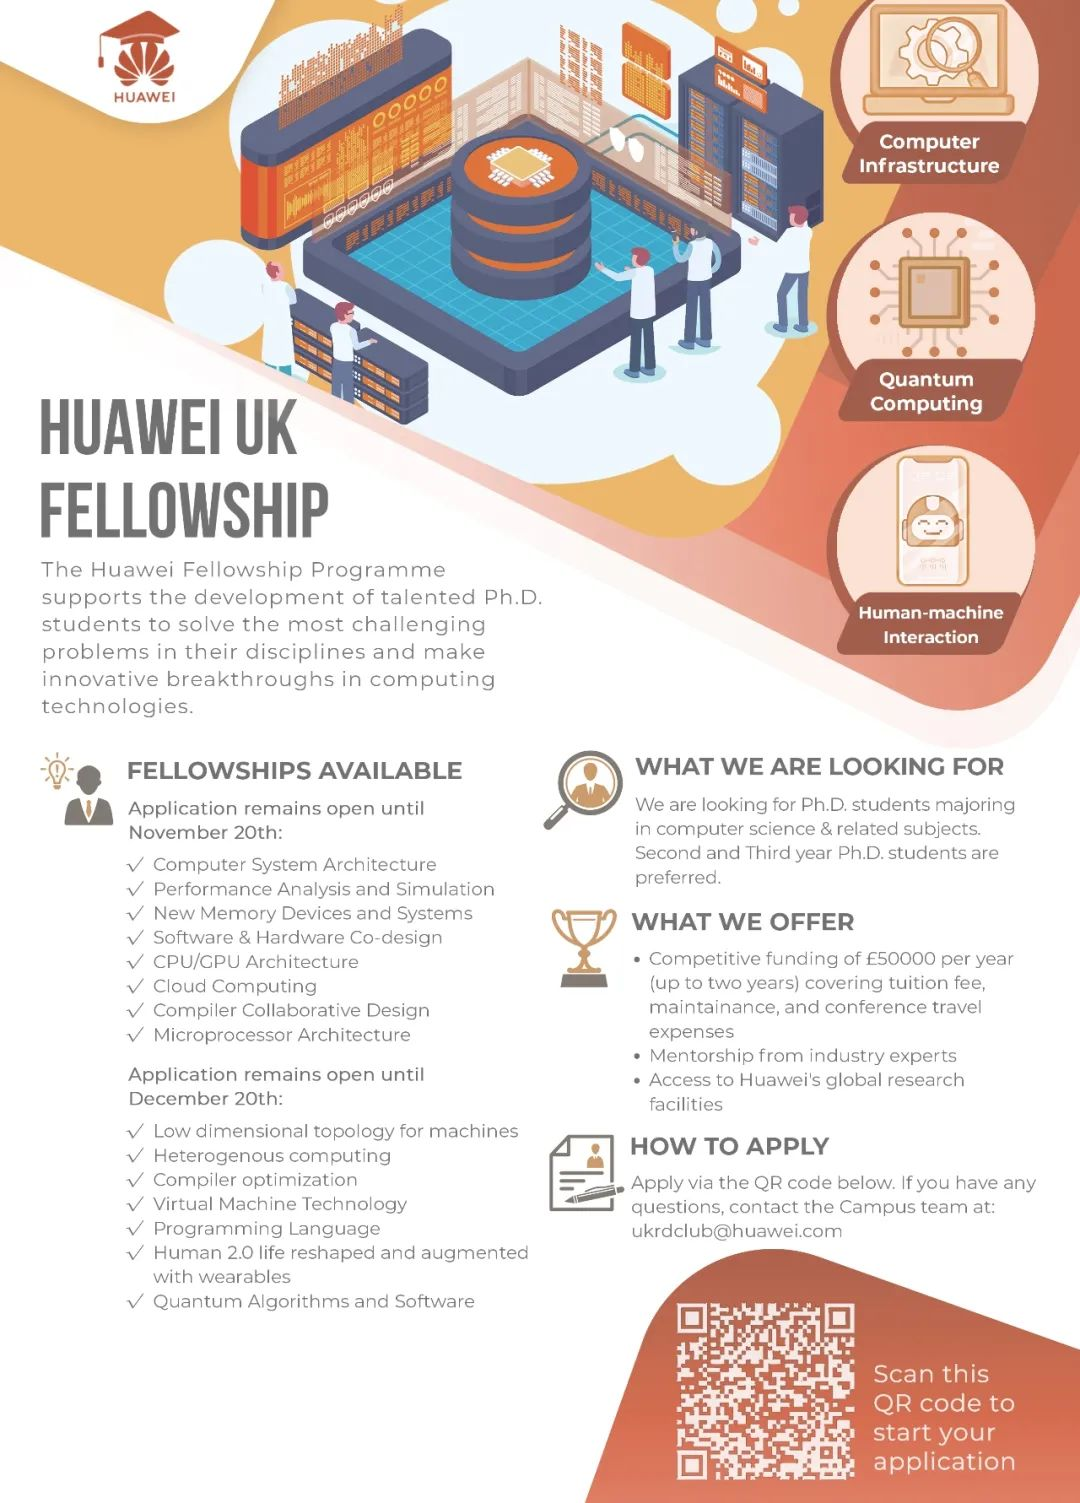 【就业资讯】Huawei UK Fellowship Program Releases New Topics